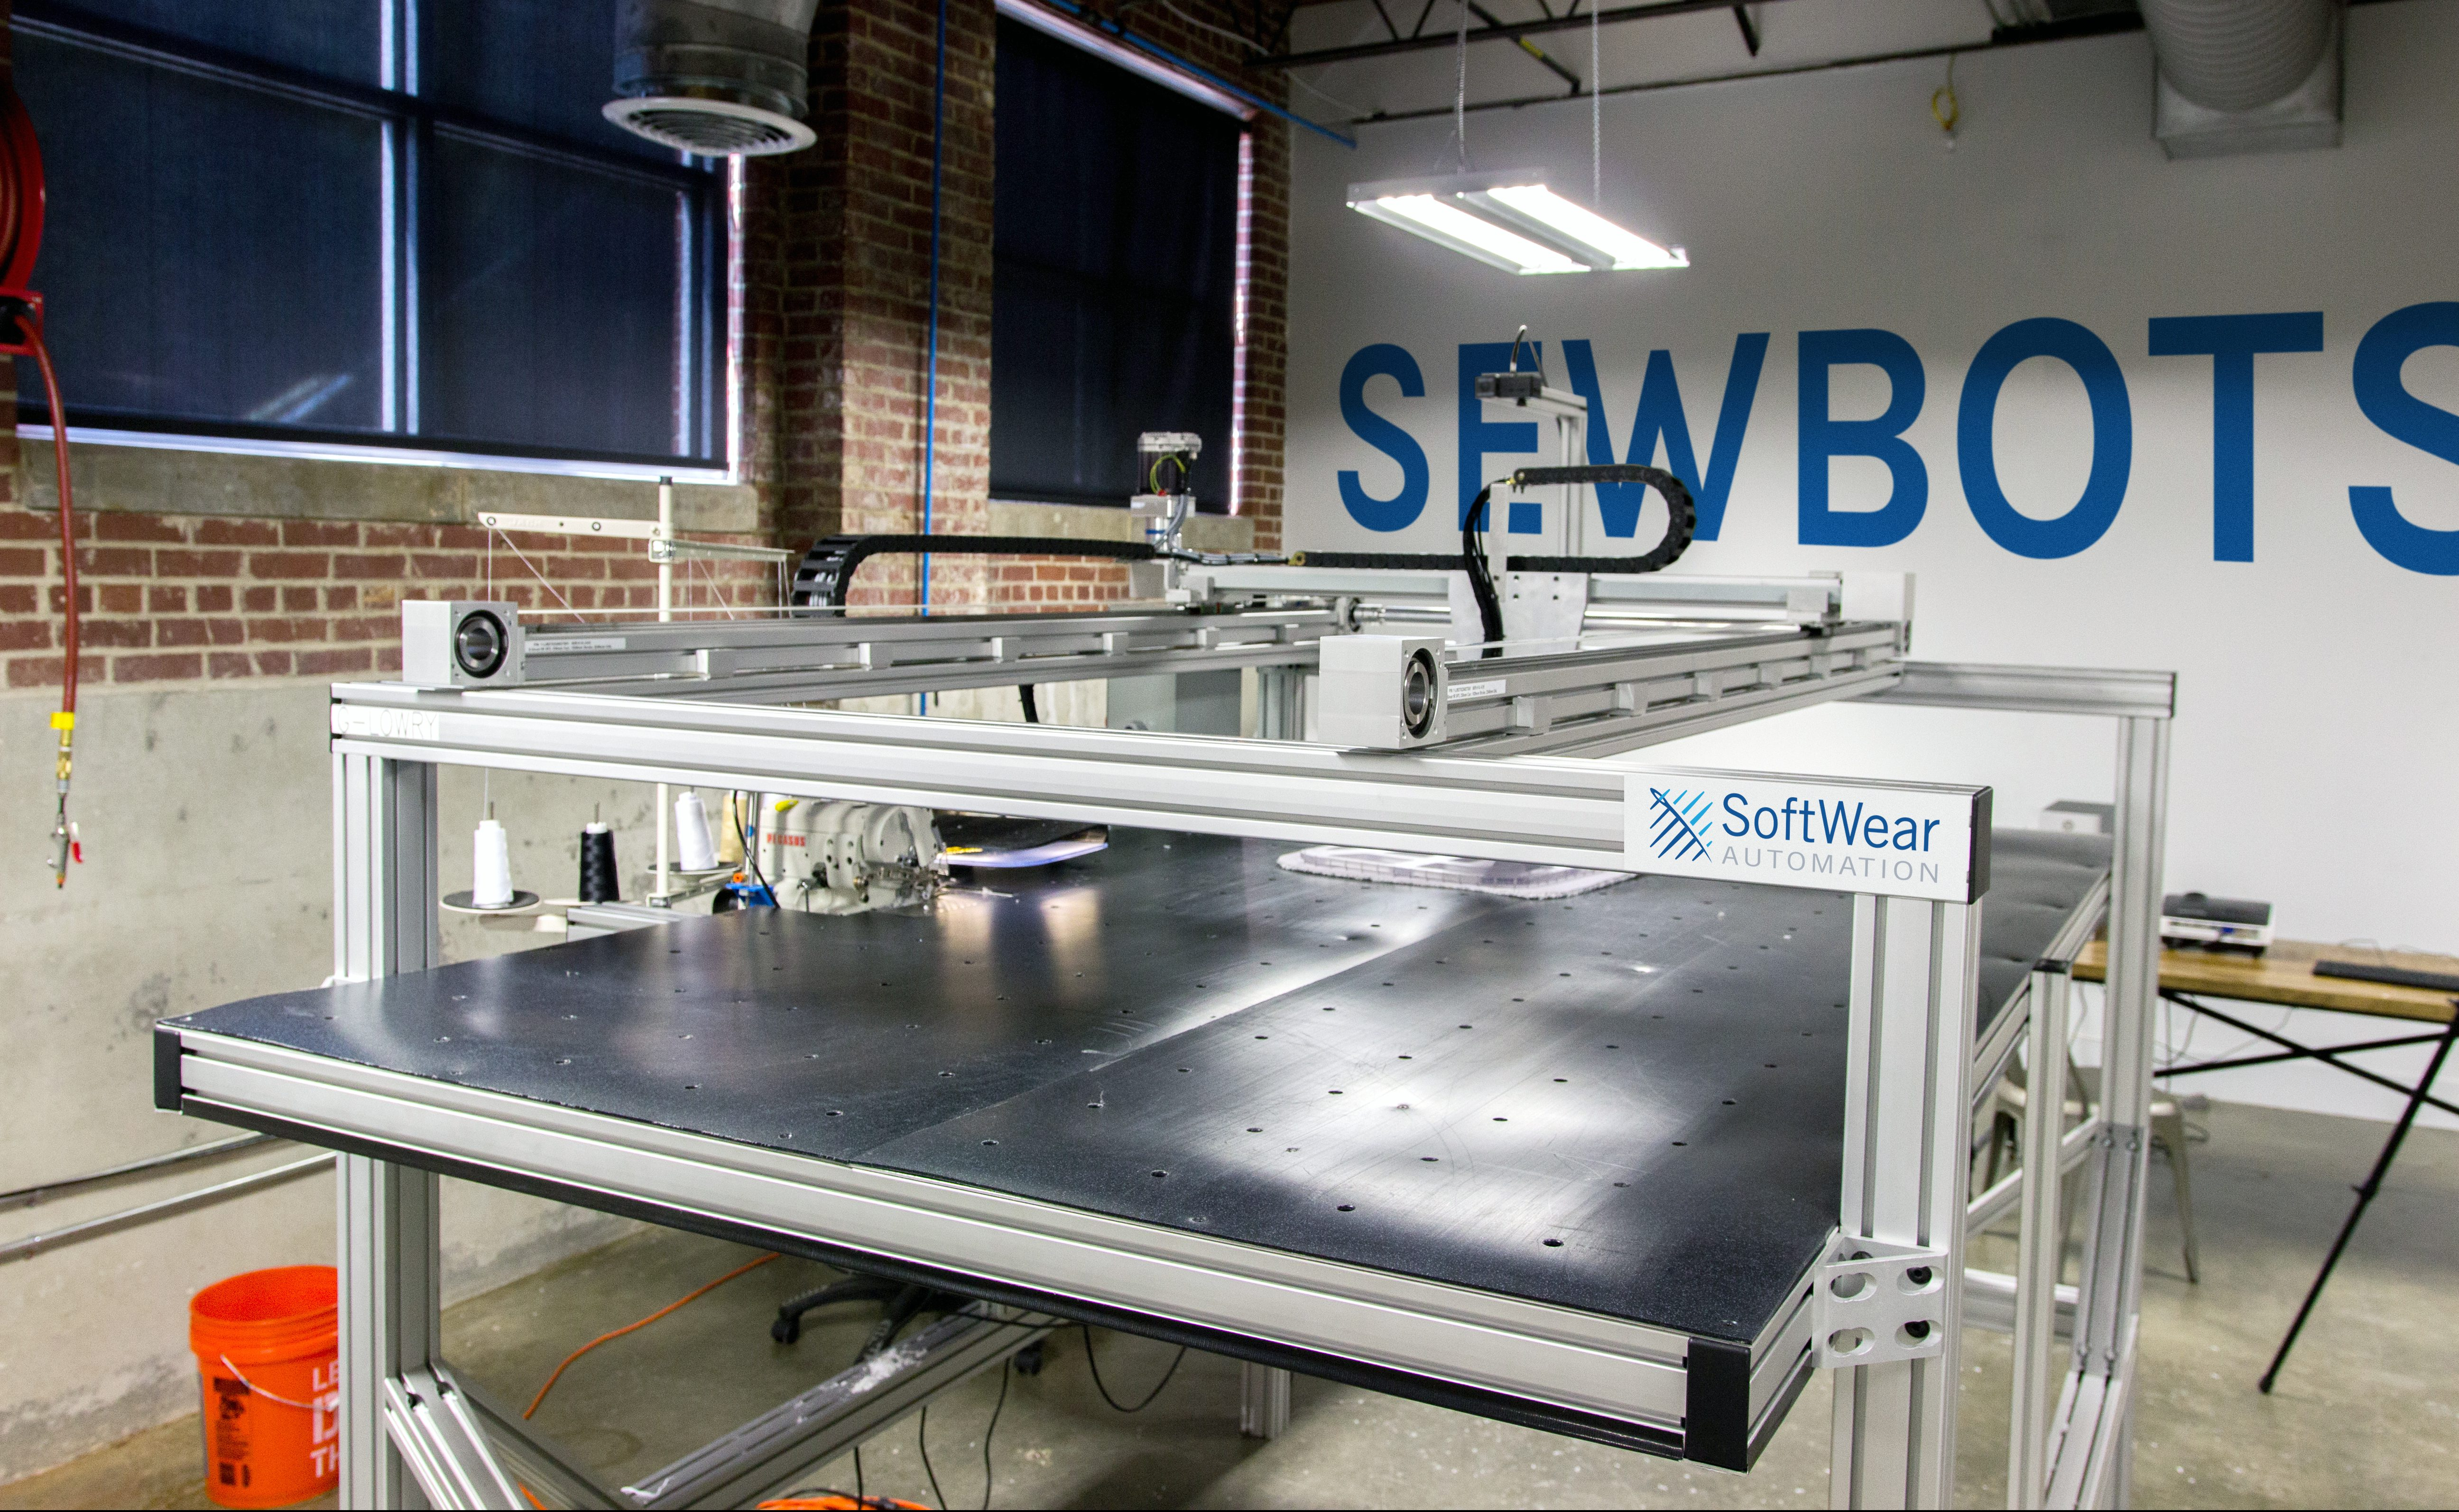 Softwear automation 39 s t shirt sewing robots can make as for T shirt manufacturing machine in india